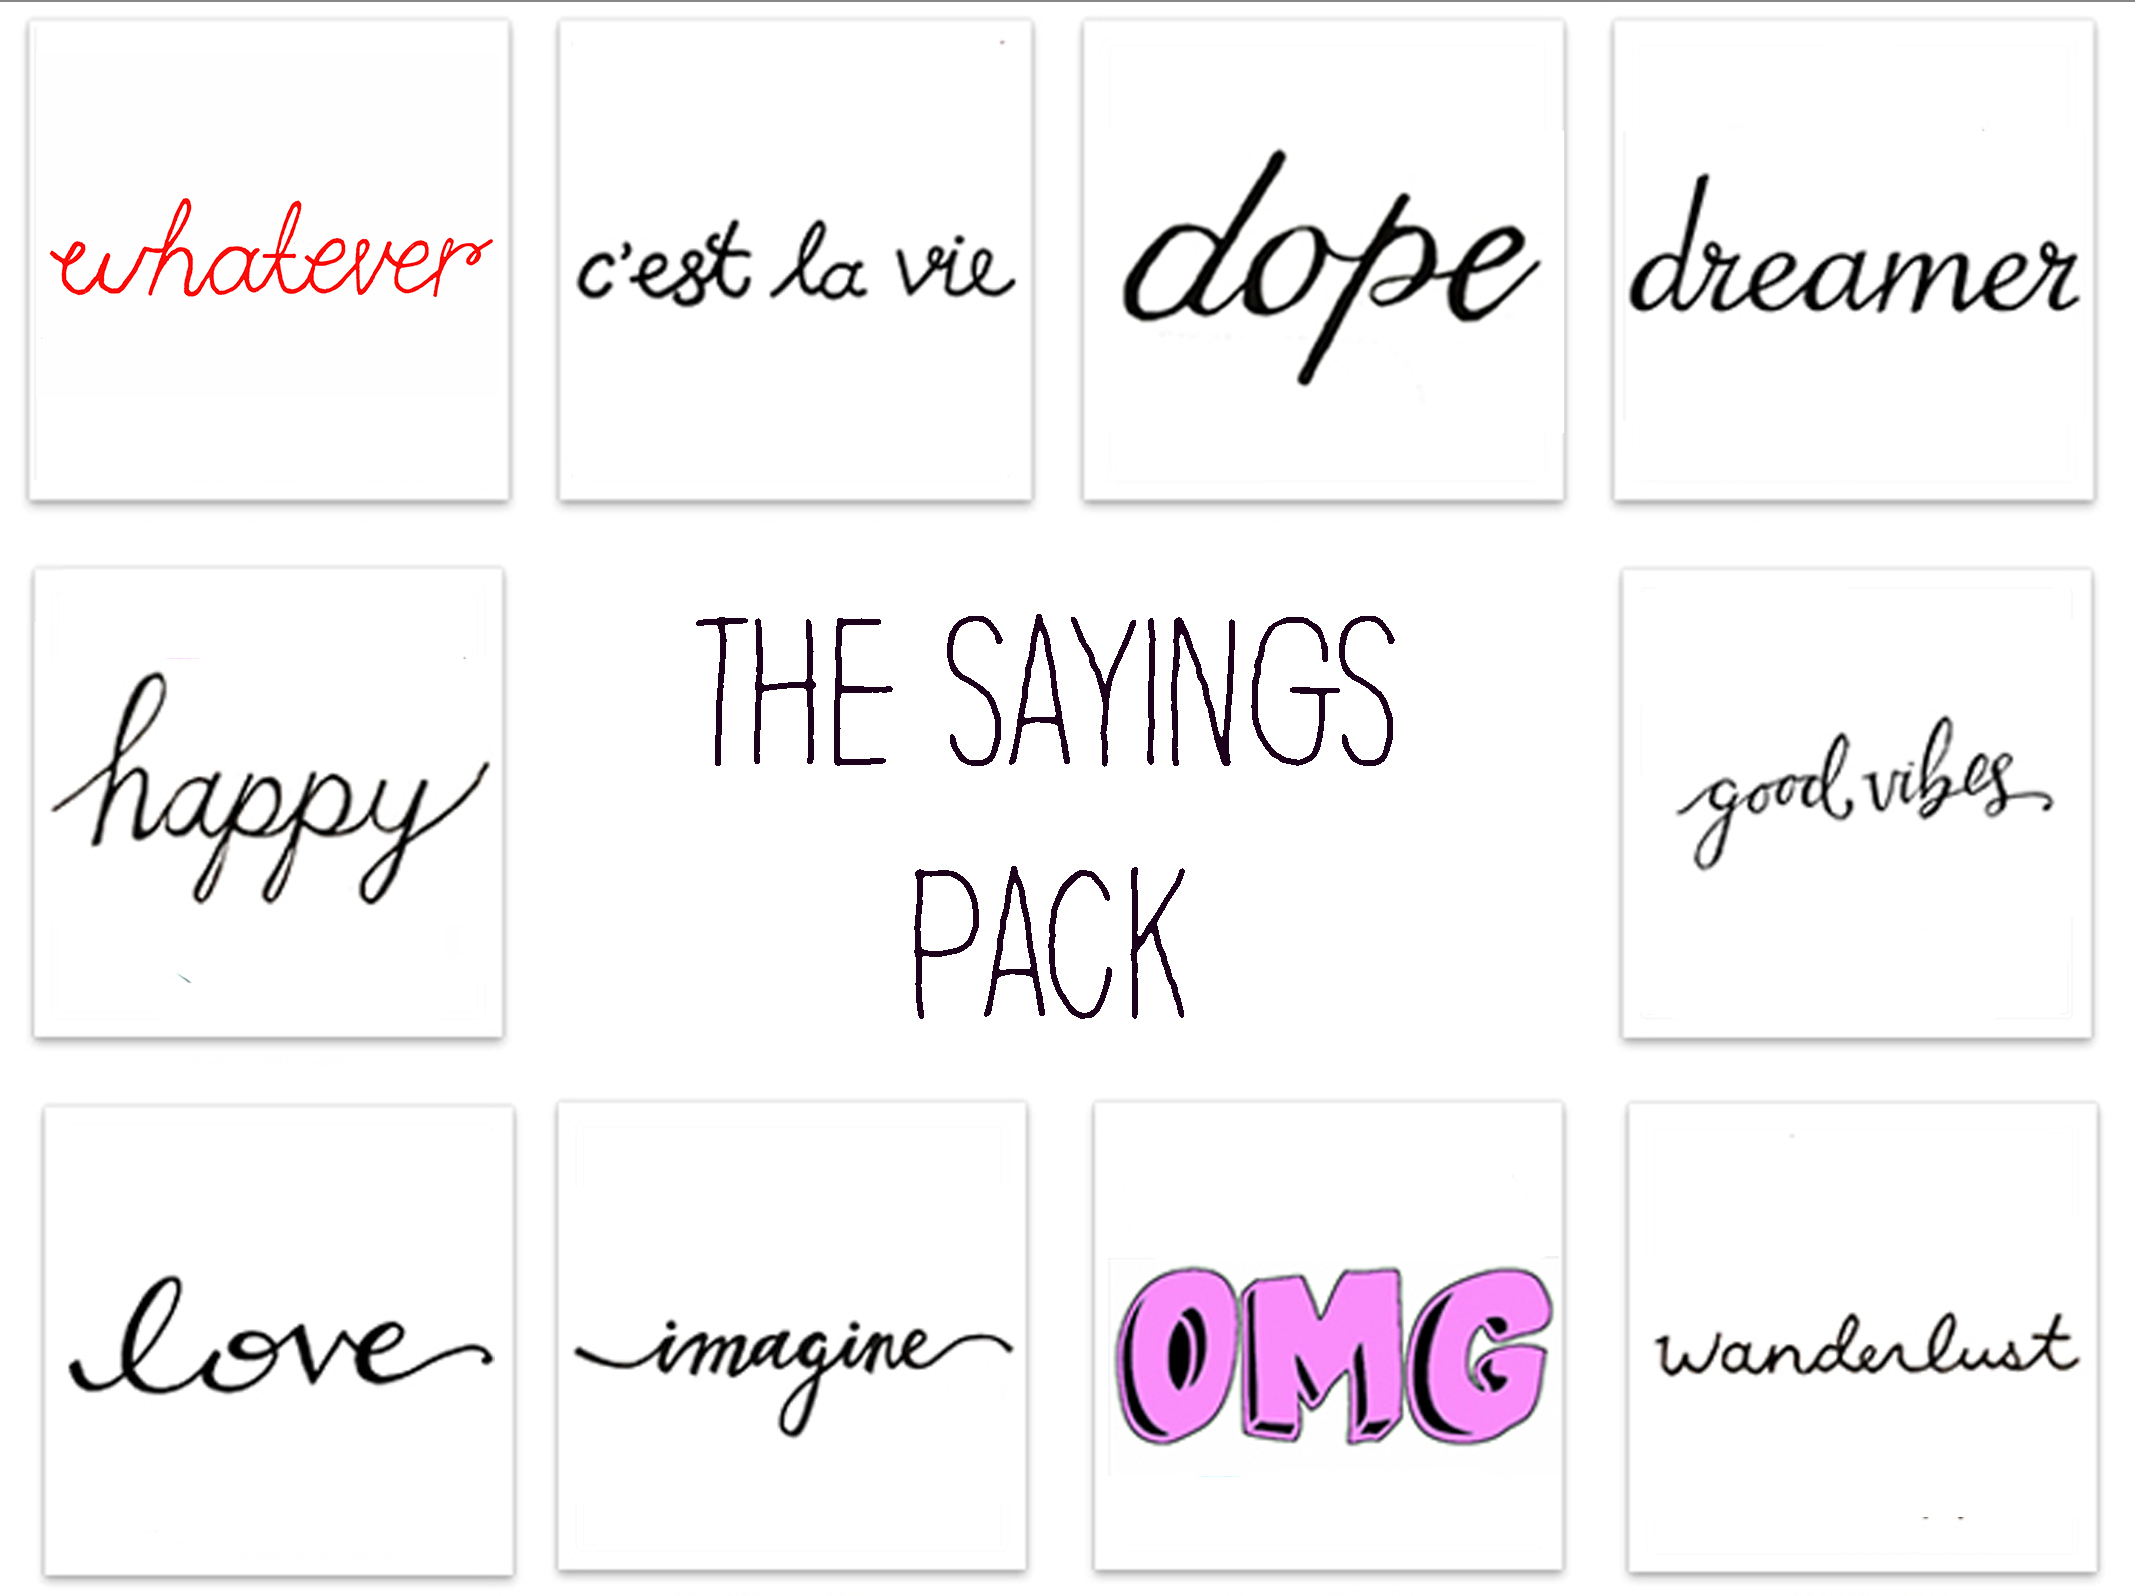 The Sayings Pack